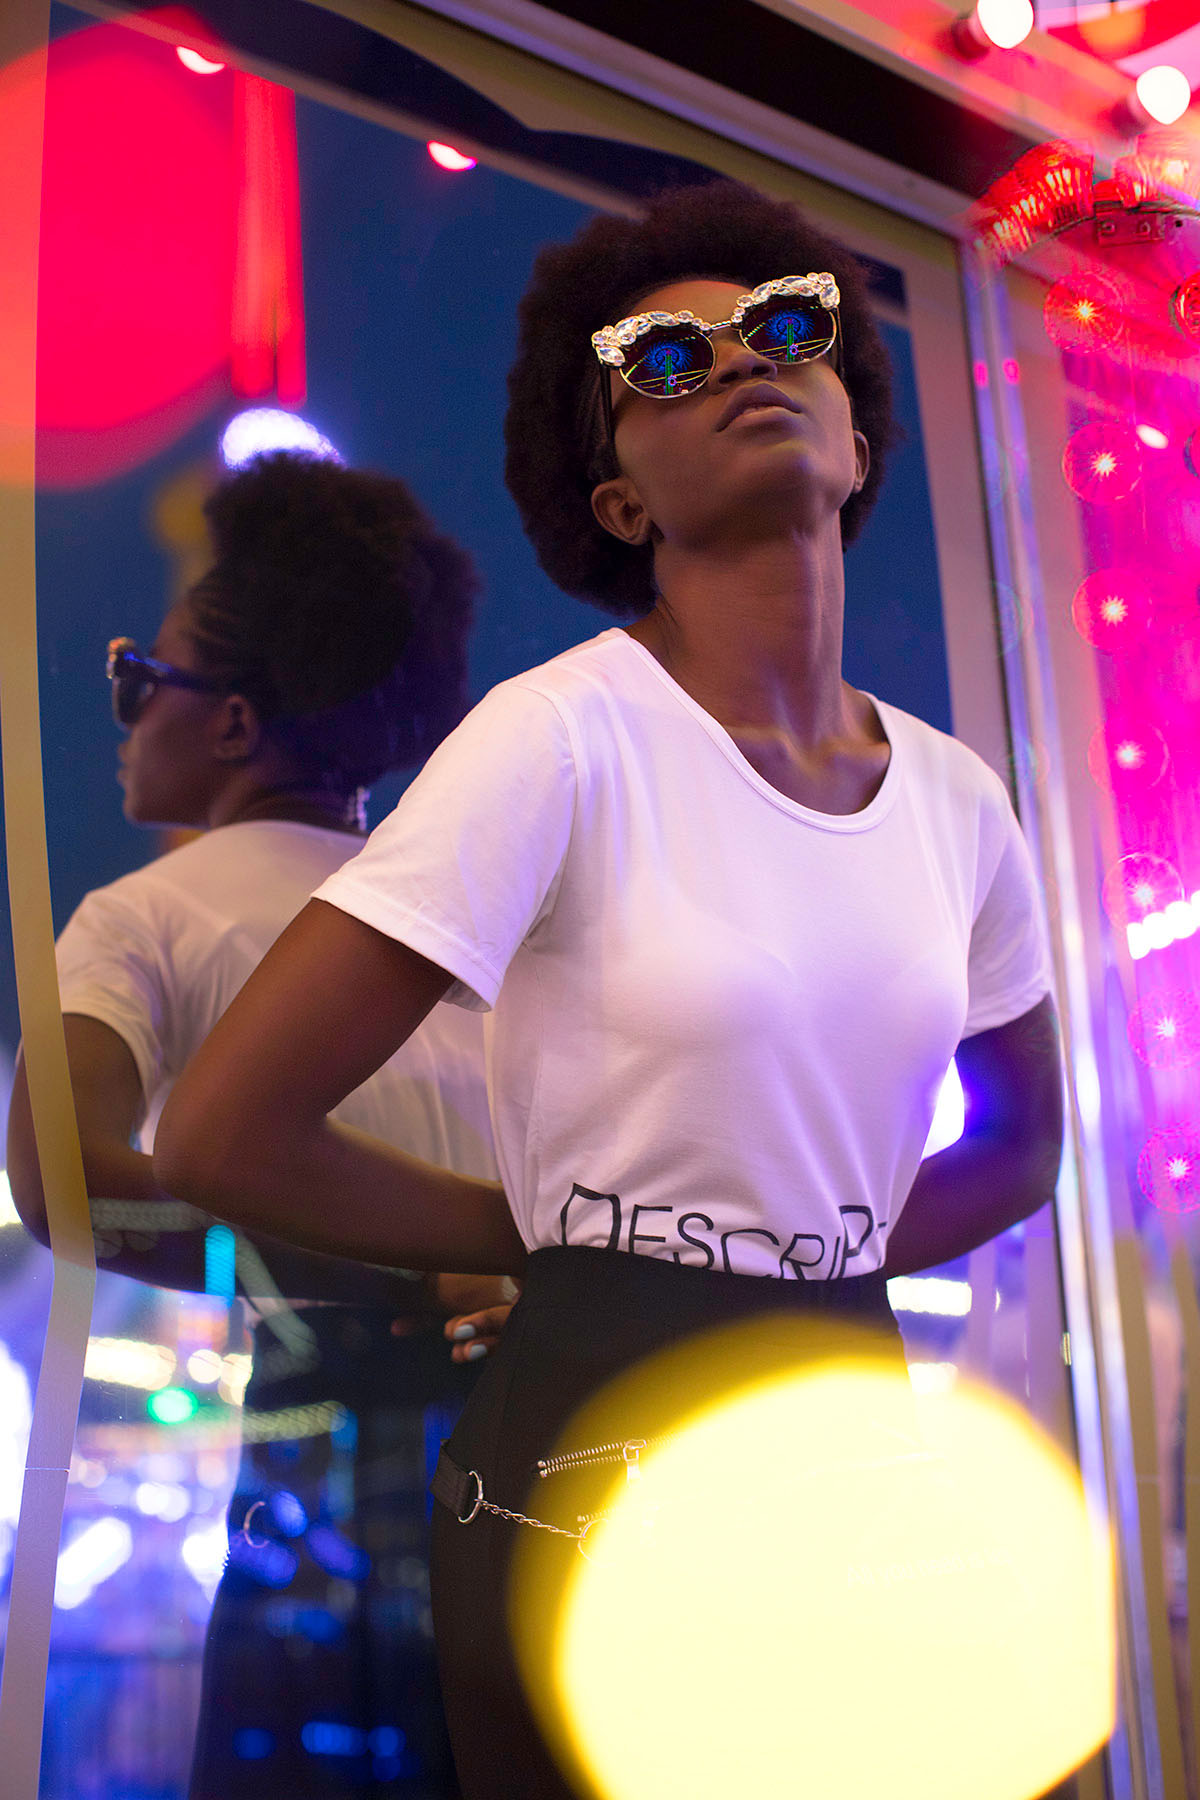 Neon fun fair fashion photoshoot by Loesje Kessels Fashion Photographer Dubai